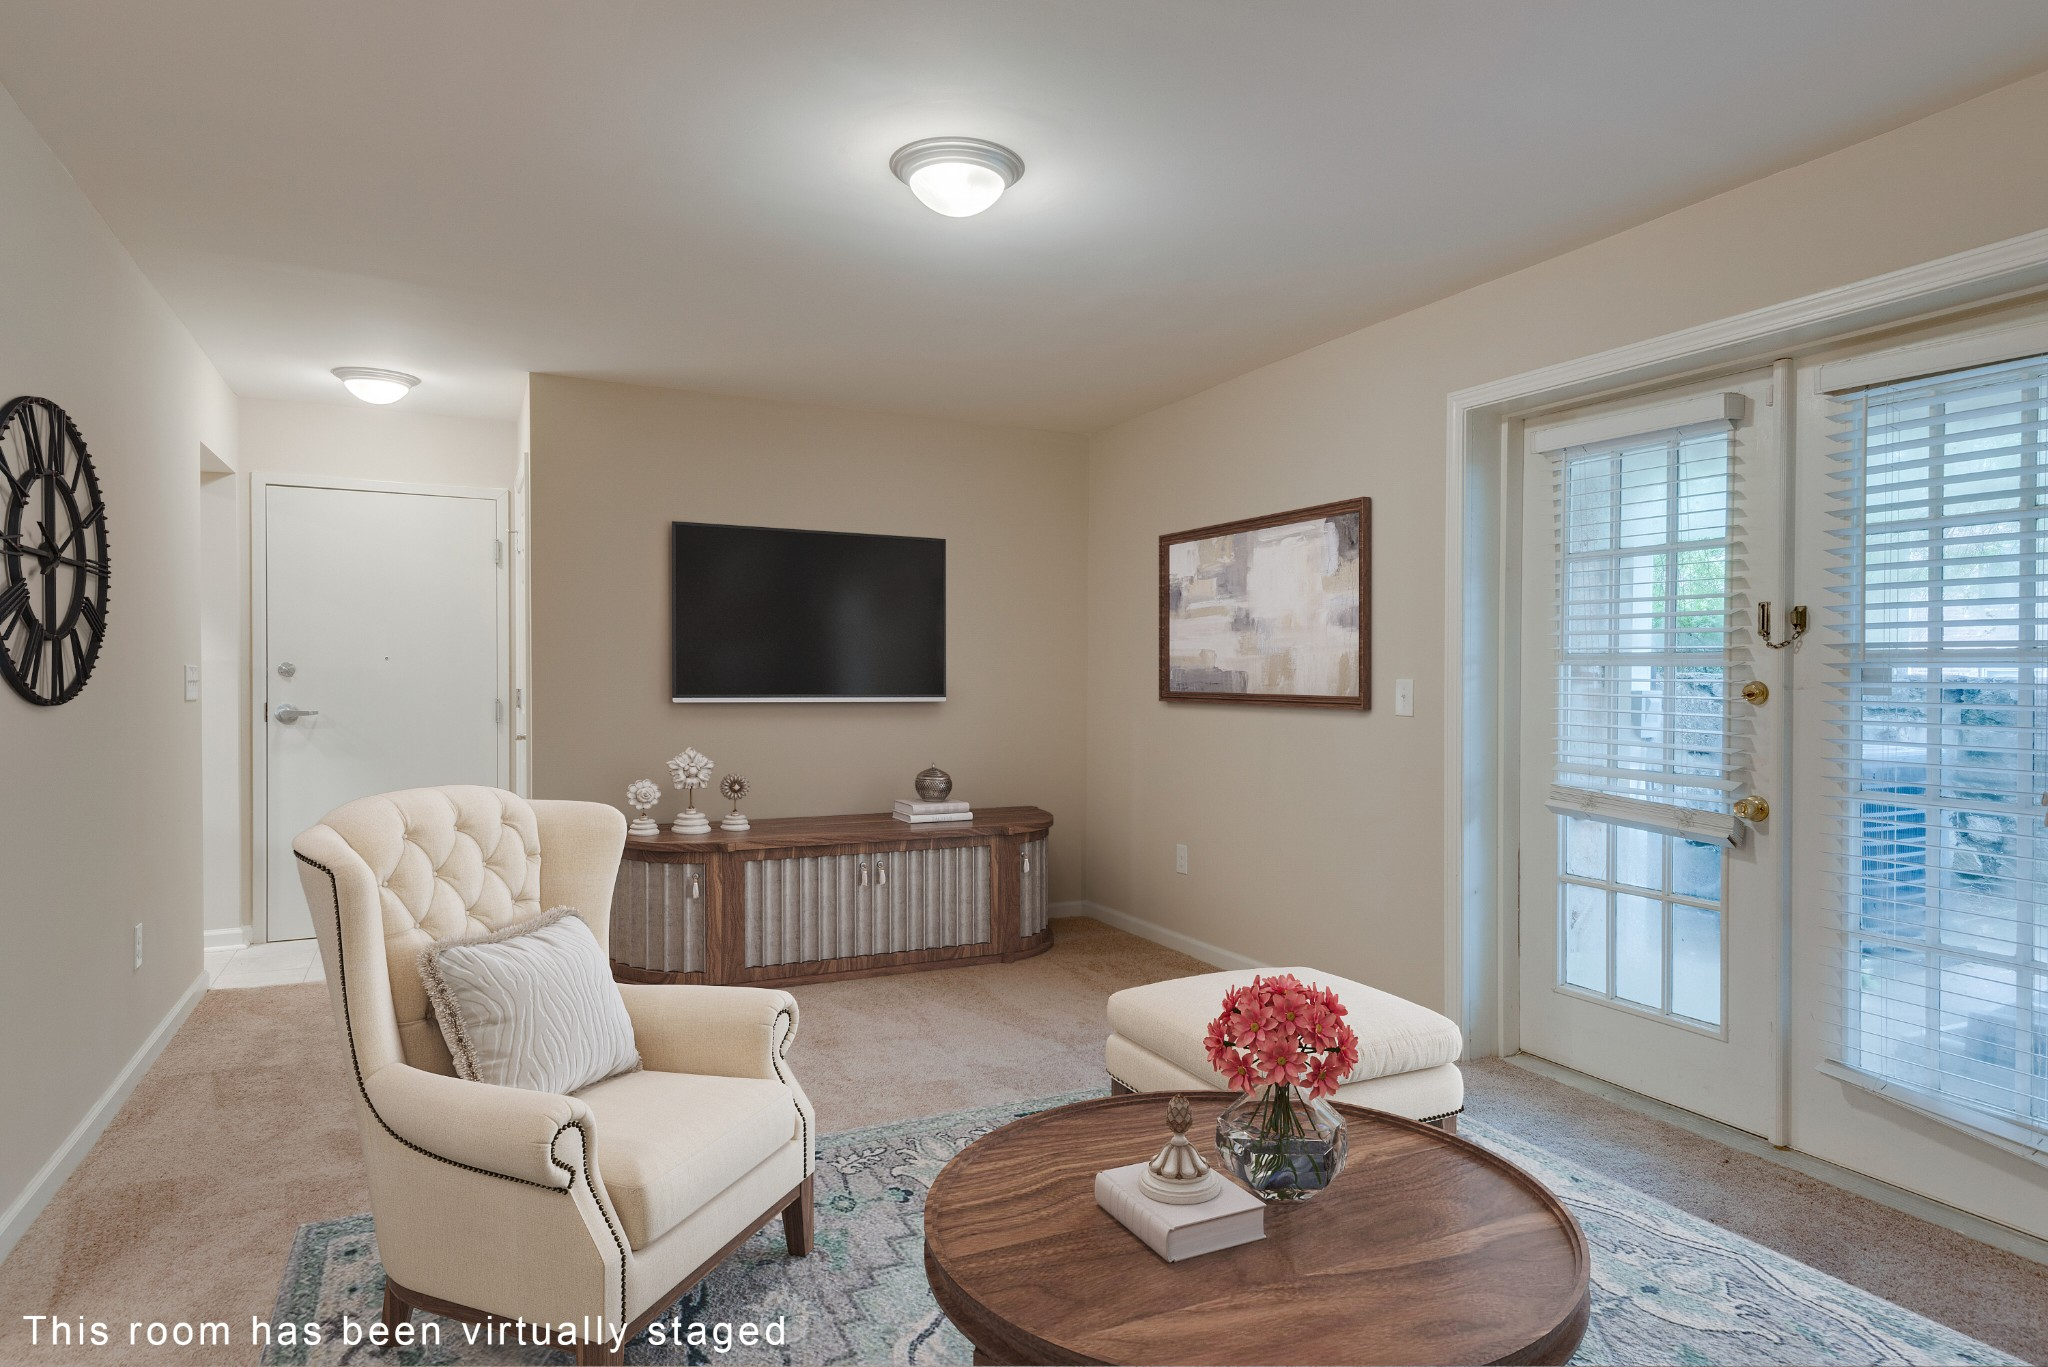 Superb Green Hills location and affordably priced! Completely renovated interior - new kitchen, bath, carpeting, HVAC, water heater. Just move right in! Charming stone walled patio overlooks a community area ripe for a friendly BBQ. Washer and dryer connections already in place.